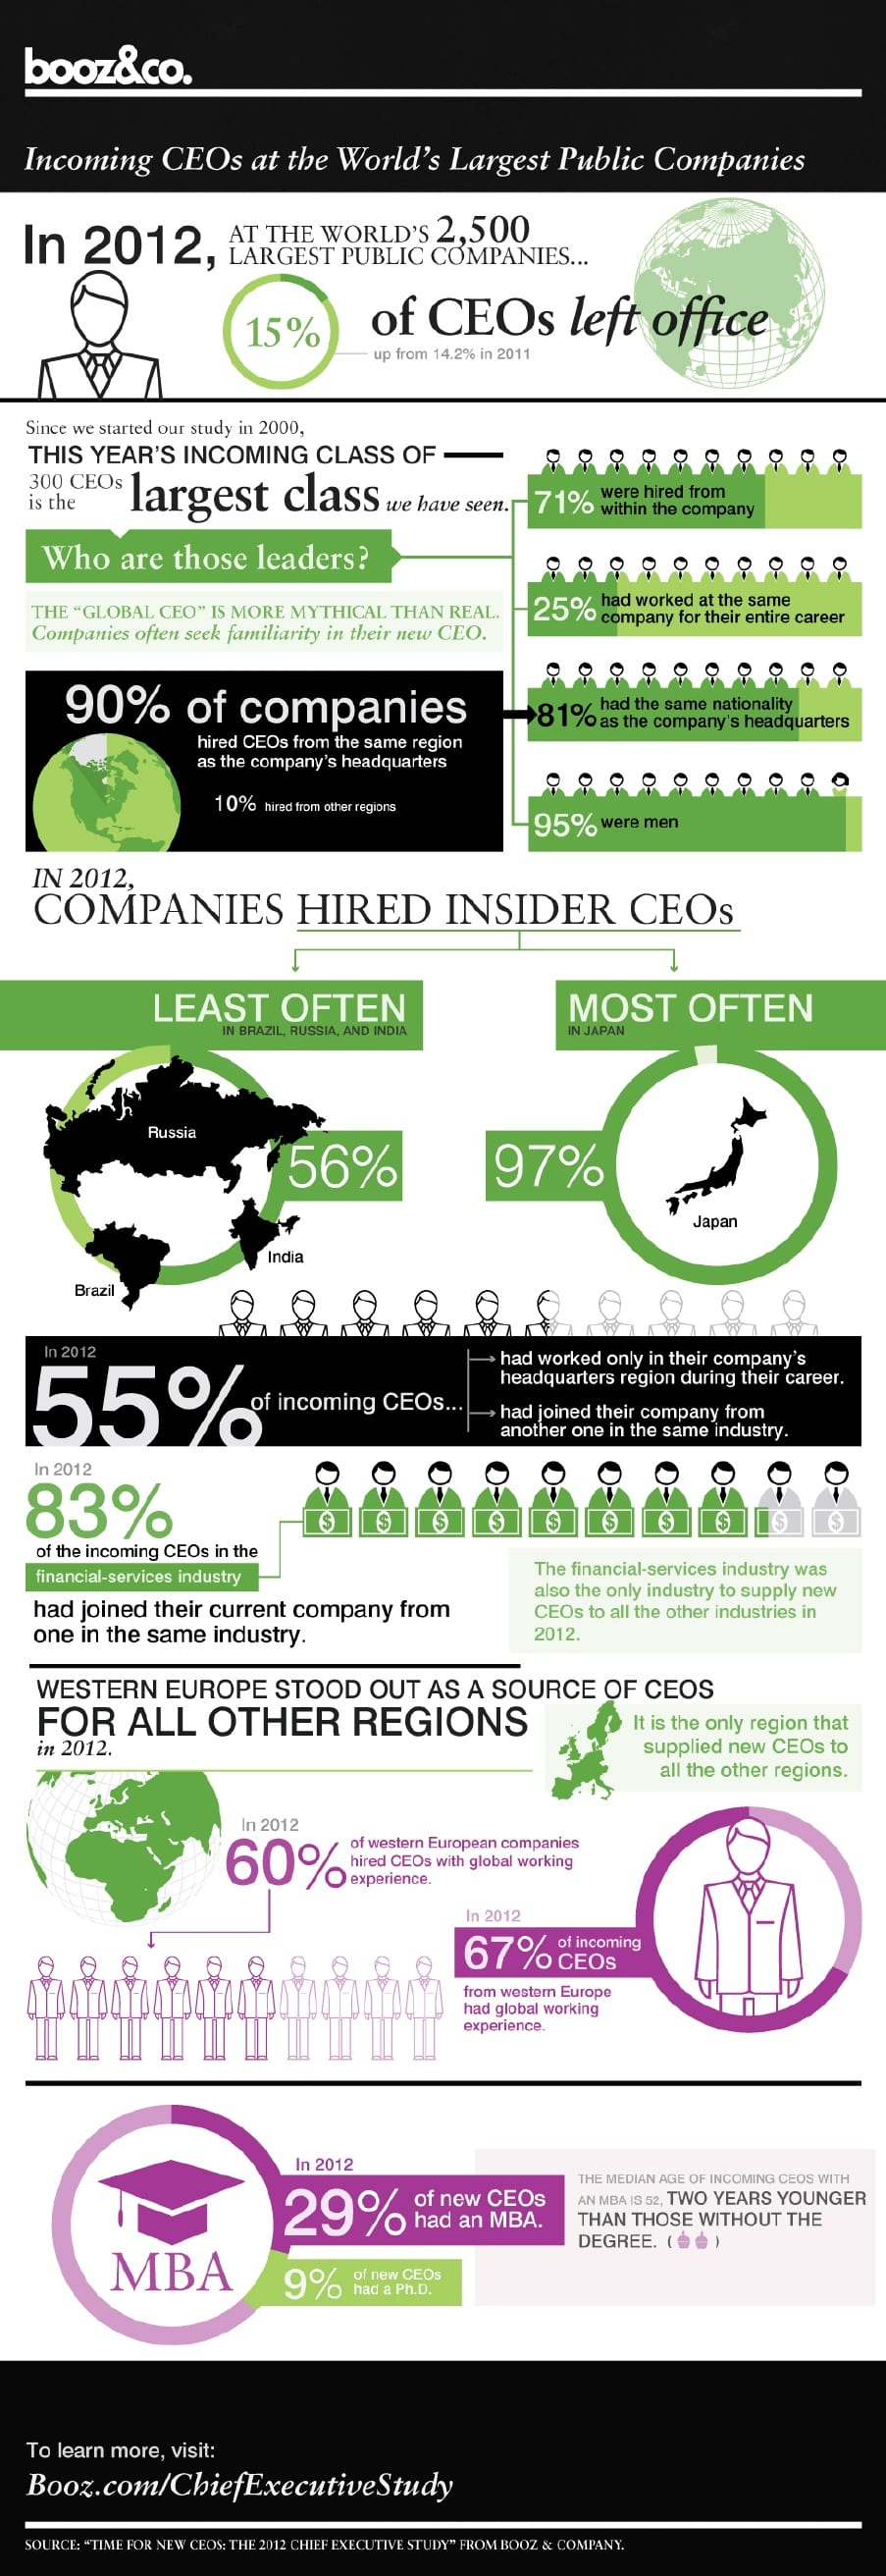 Booz & Co. CEO Infographic